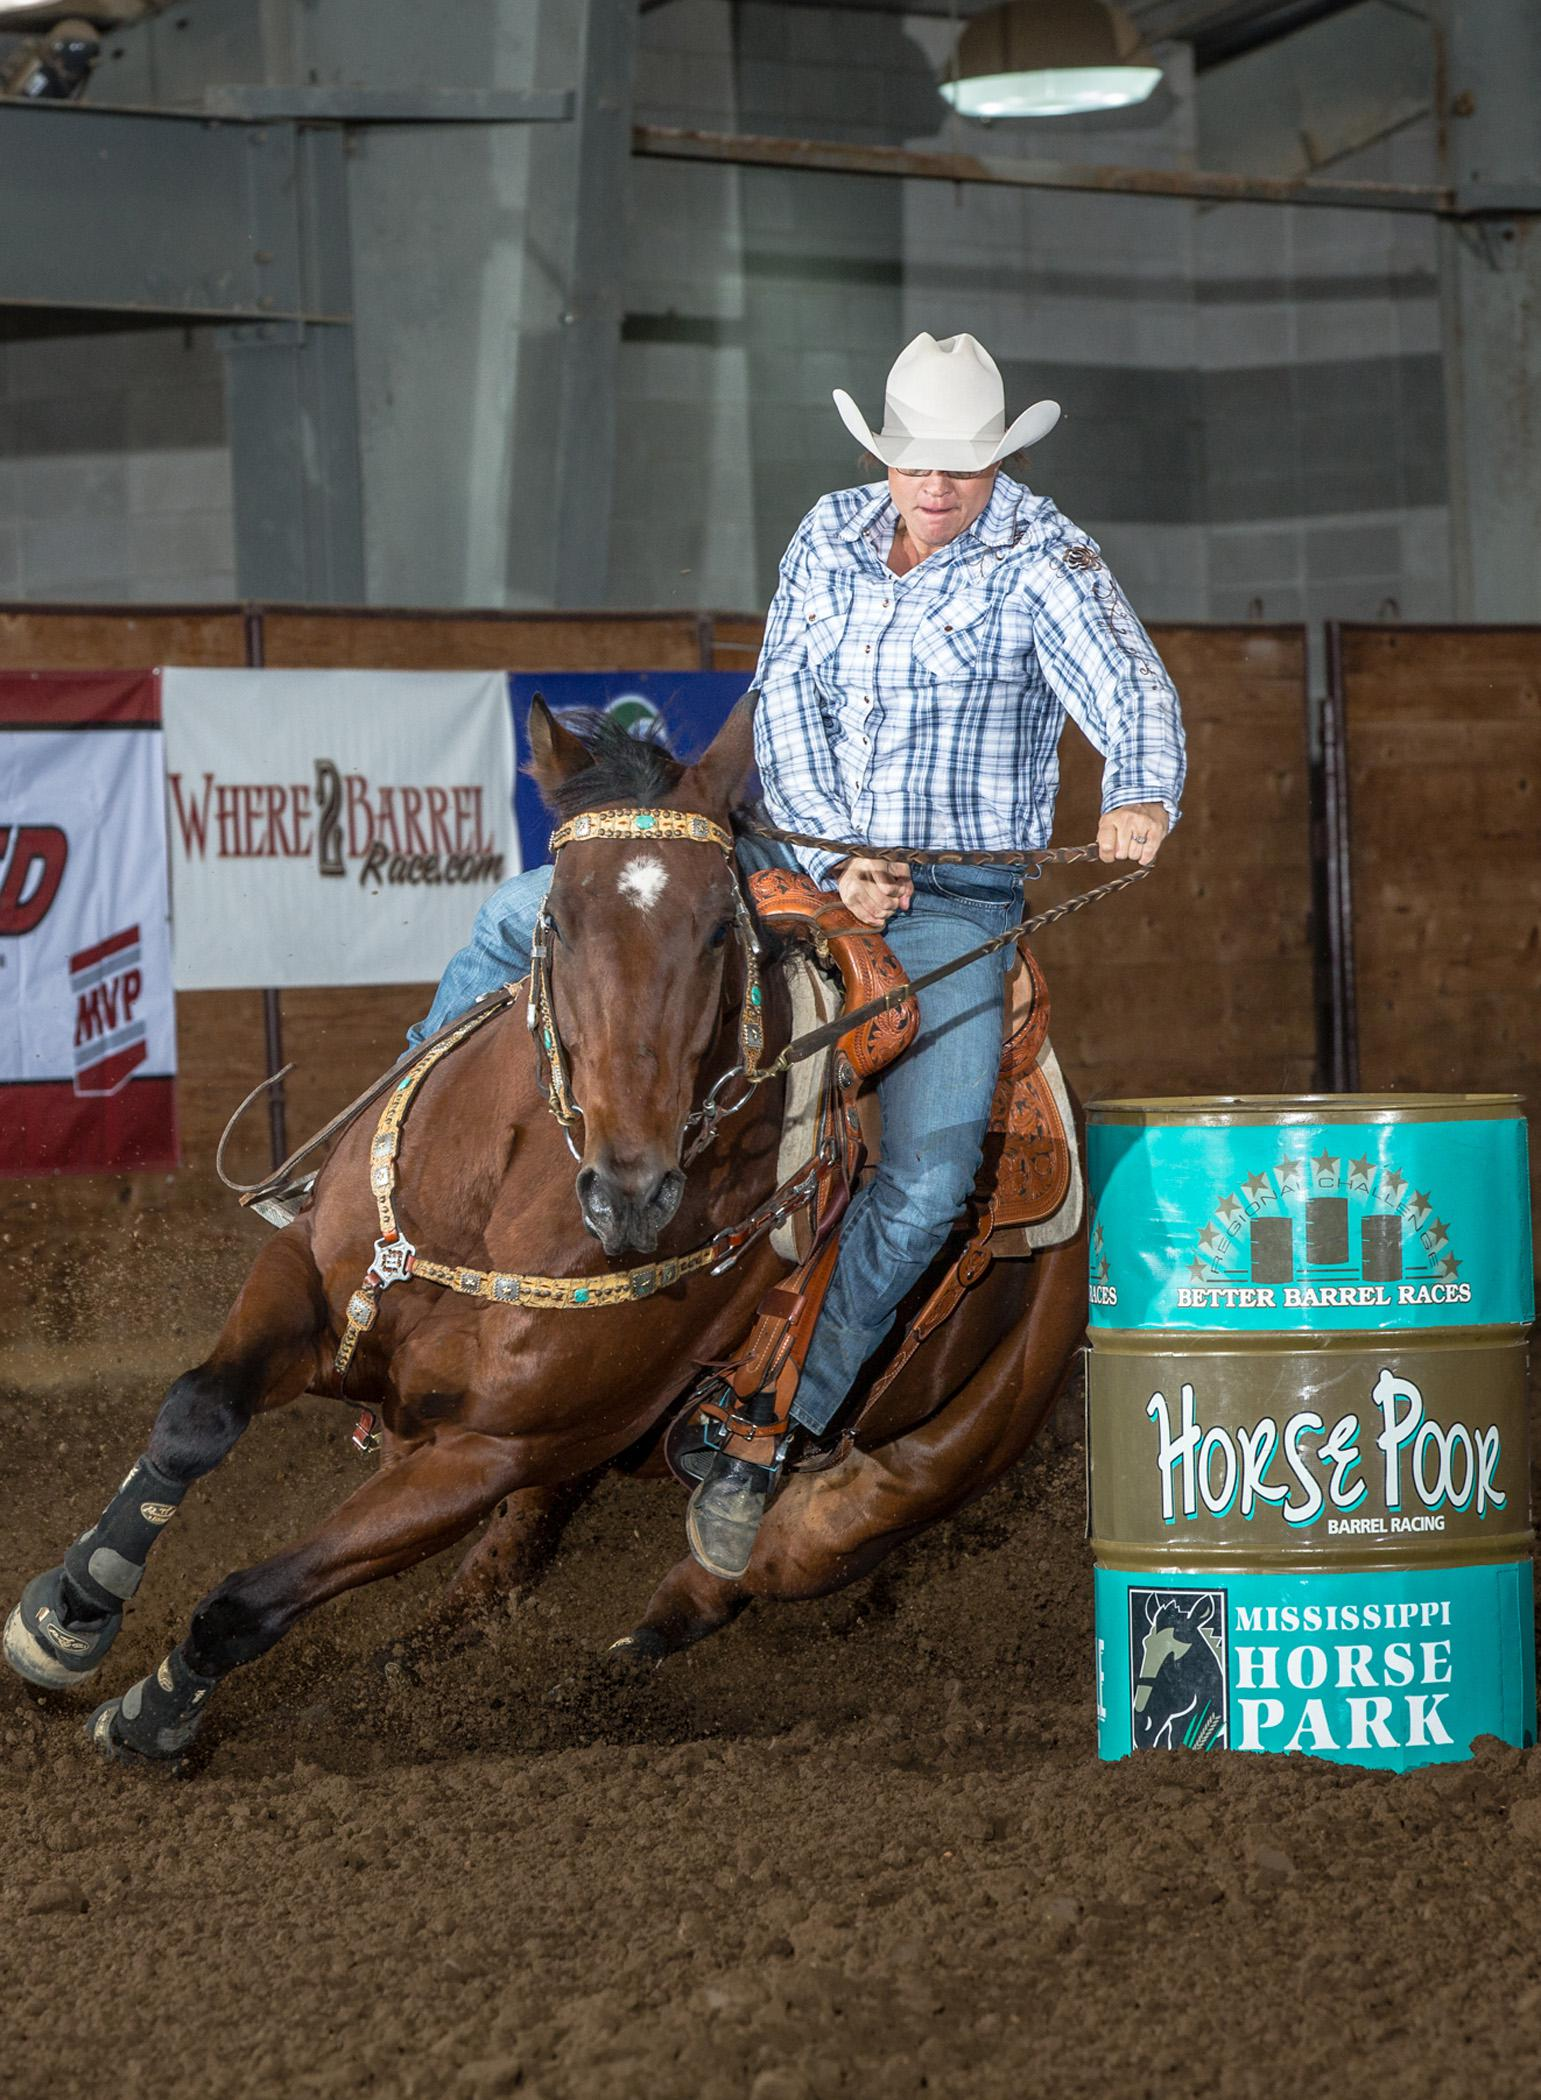 This barrel racer was one of 1,651 entries from across the country at the Mississippi Horse Park during 2013 Horse Poor event, which was held in conjunction with the Better Barrel Racing Association Eastern Regional Tour Finale. The 2014 competition will be one of 10 qualifying events for The American, the world's richest one-day rodeo final, and will be nationally televised on RFD-TV on Oct. 17. (Submitted Photo)